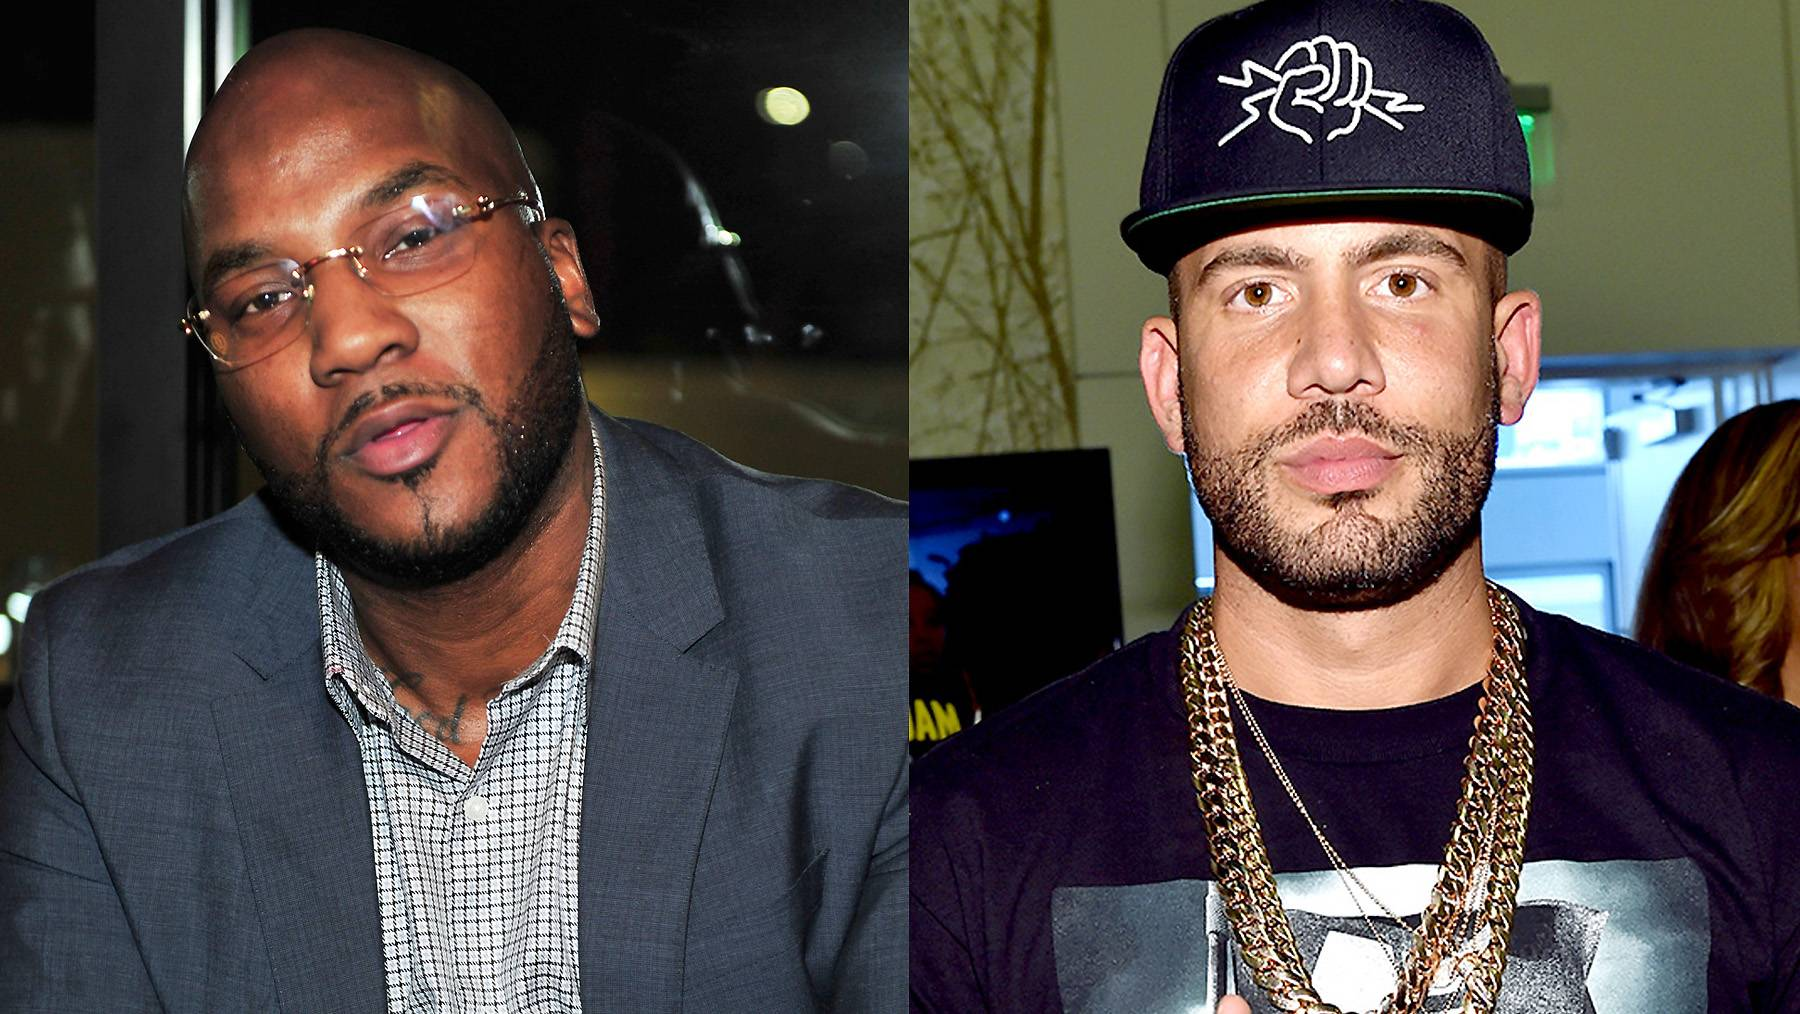 Fallout With DJ Drama - DJ Drama and Jizzle go all the way back to before Jizzle?s Trap or Die days. So when Drama hosted Jeezy?s nemesis Gucci Mane?s mixtape The Movie,it didn?t sit well with the CTE boss. The tension brewed and Drama and Jeezy?s camps got into it at the 2009 Atlanta screening for the movie Notorious. ?Drama just started acting like a b---h. Drama wanted to be Khaled, but he didn?t want to help nobody,? Jeezy told XXLabout what led to their feud.(Photos from left: Moses Robinson/Getty Images for Trey Songz and Angels With Heart Foundation, Alberto E. Rodriguez/Getty Images for BET)